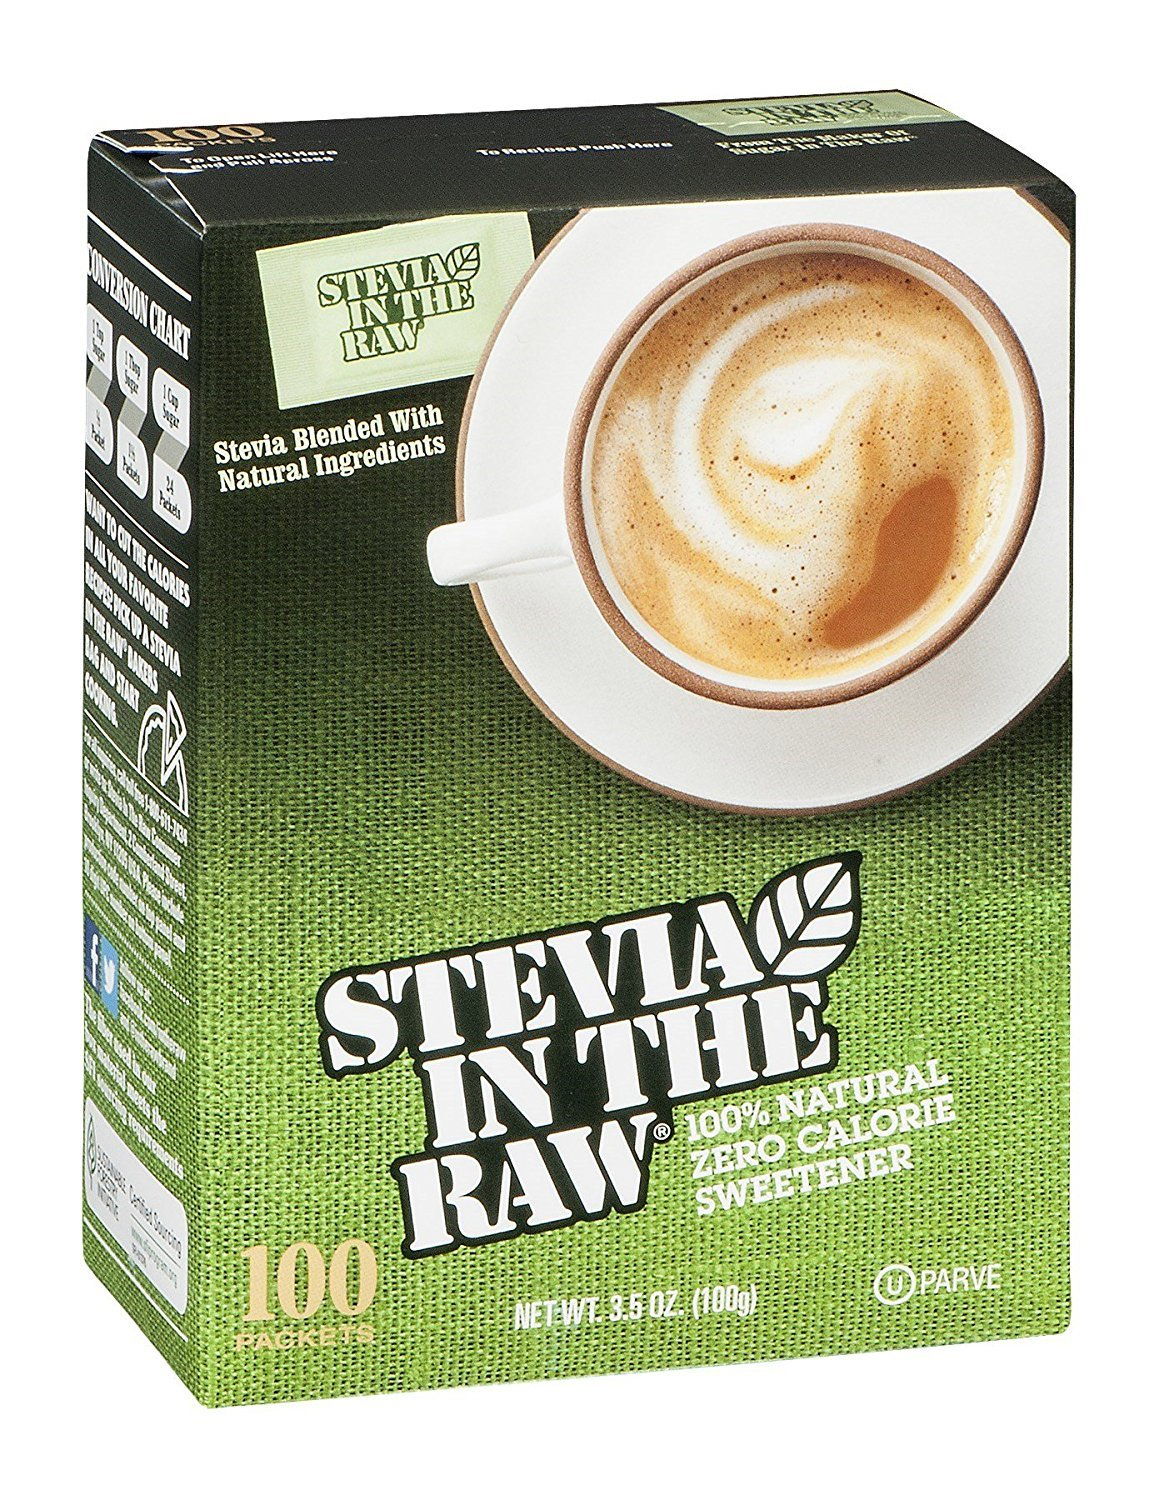 Is stevia in the raw real stevia